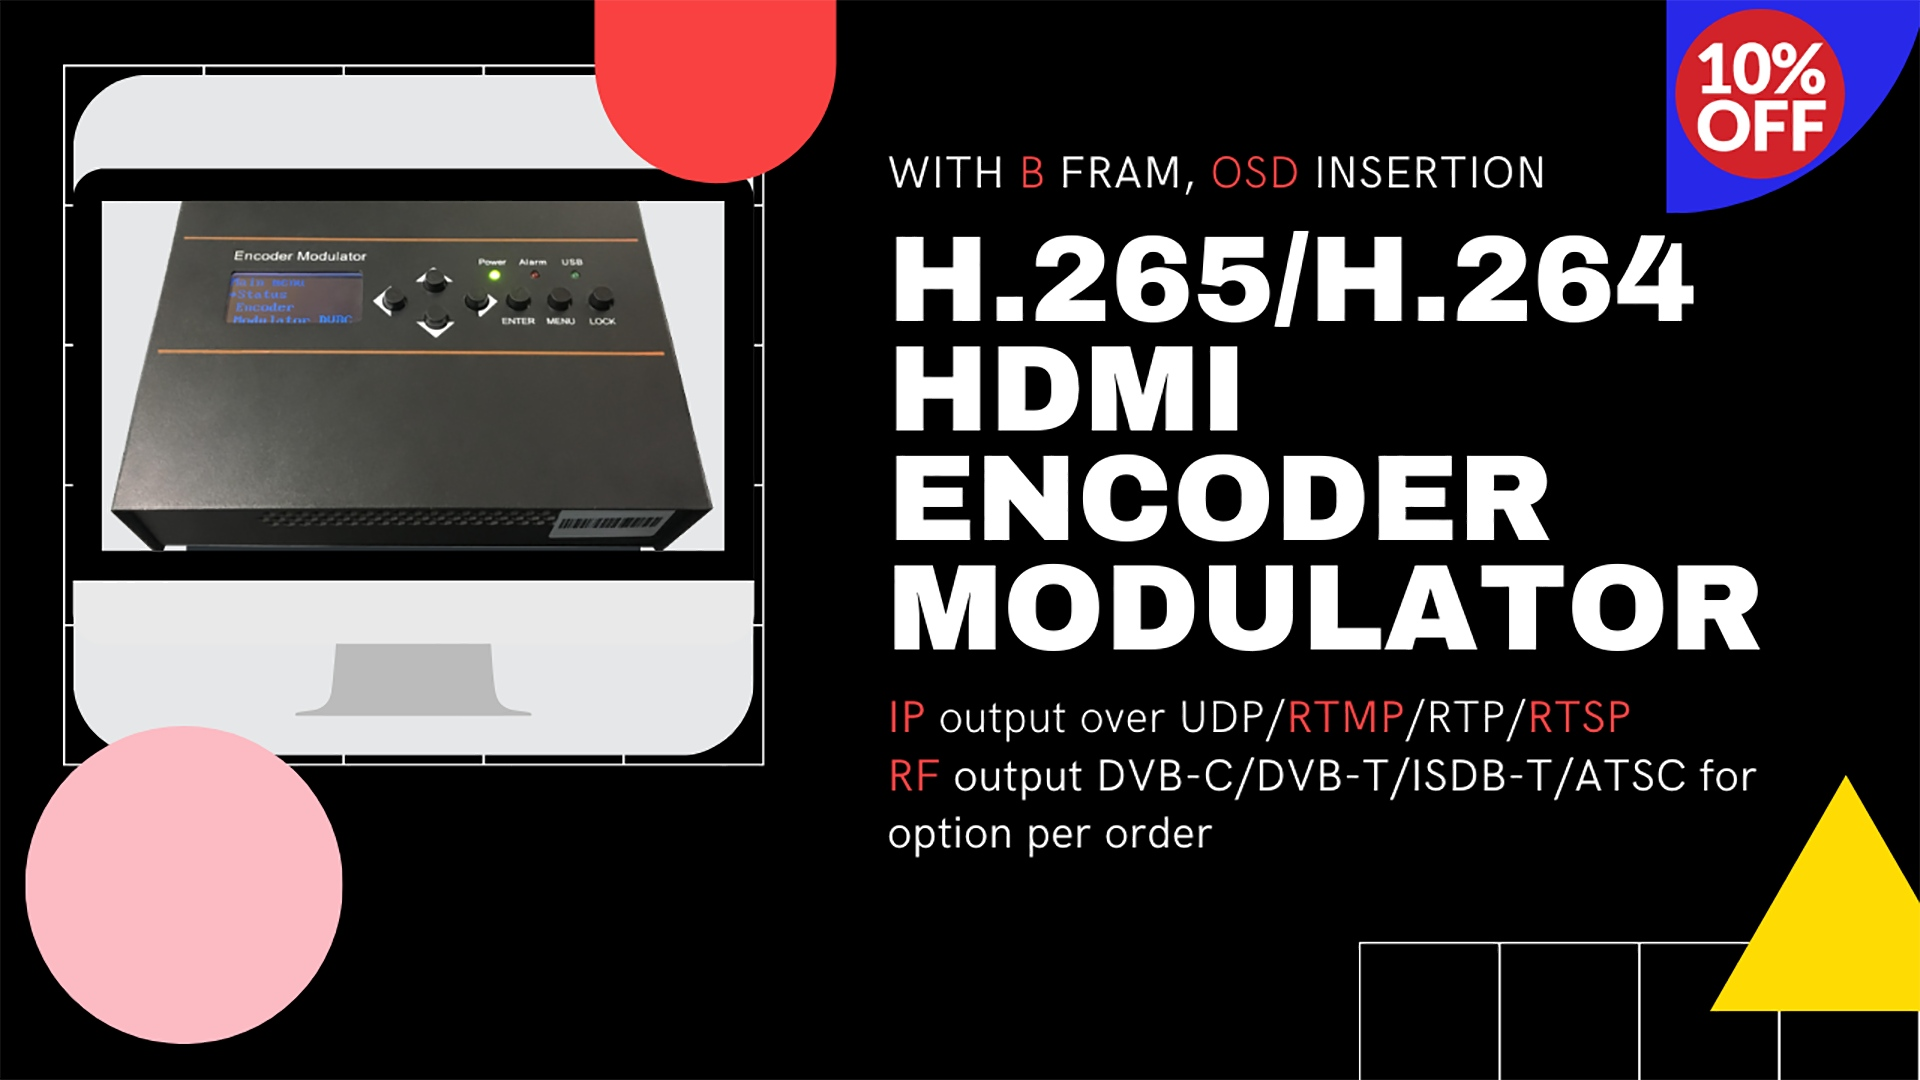 OTV-DW56 Mini Single-Channel H.265 H.264 HEVC HD Encoder Modulator